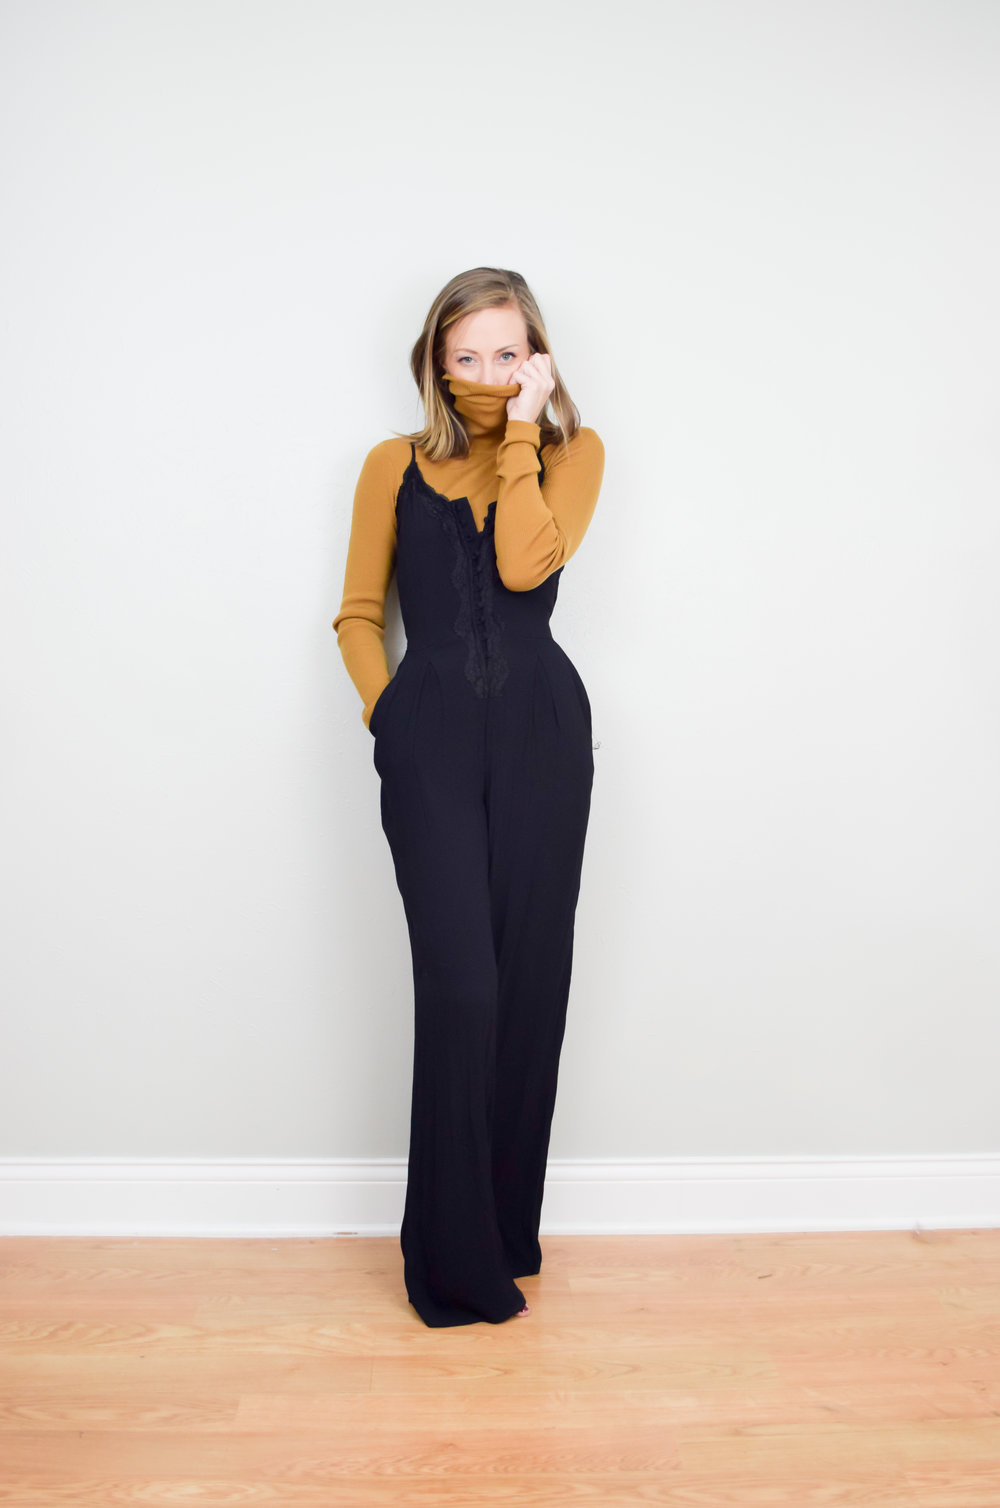 This jumpsuit is so comfy and I loved pairing it with a mustard turtleneck!